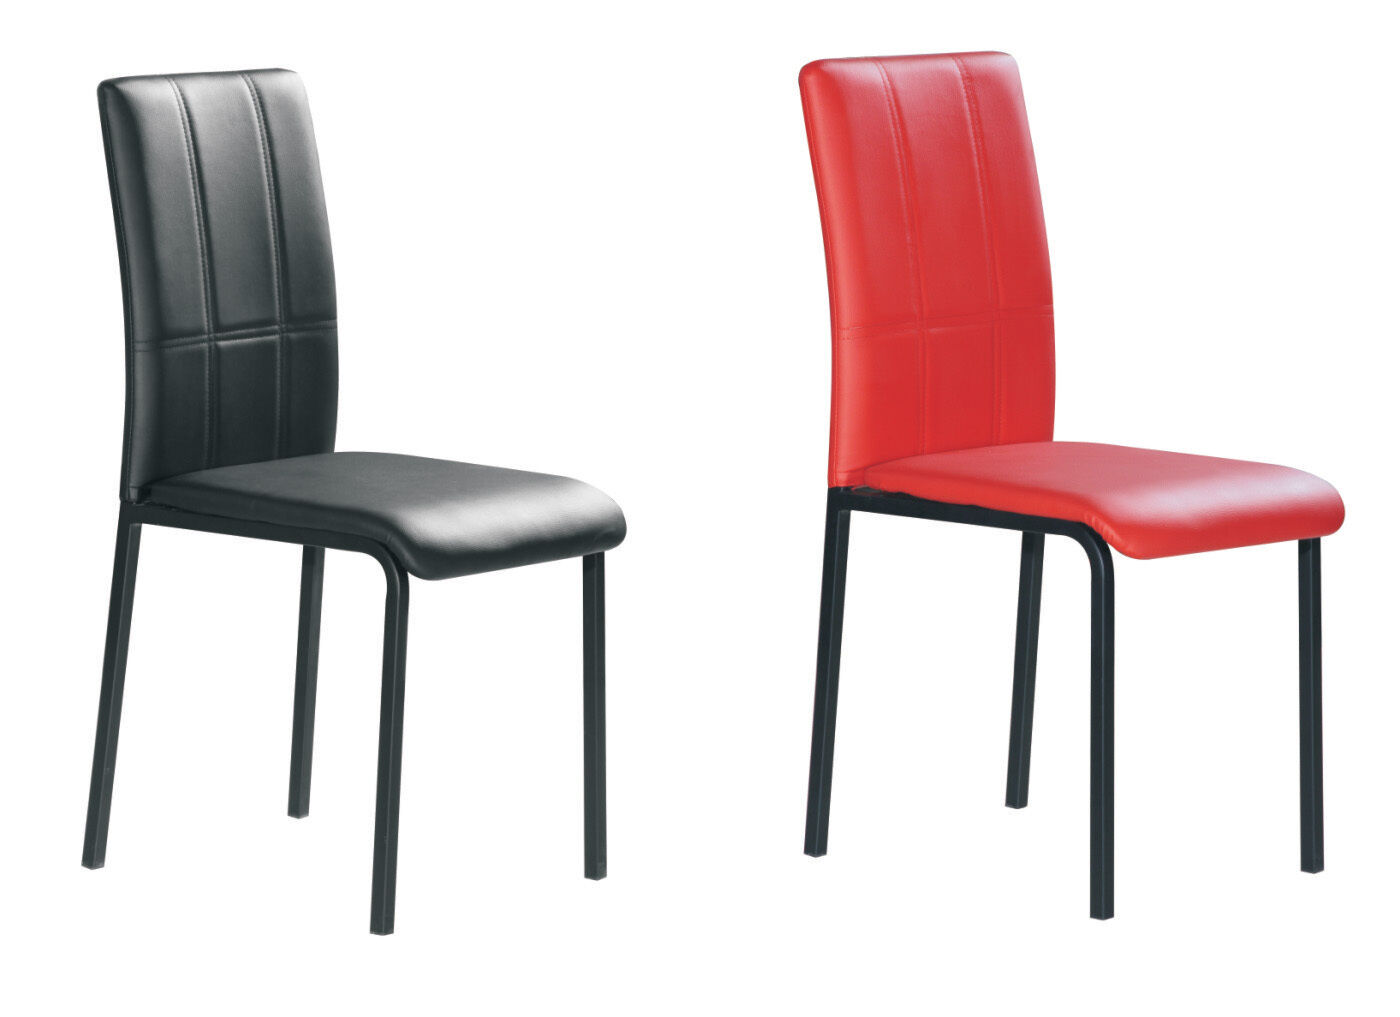 Black Metal Dining Chairs Black Red Dining Chairs Faux Leather Foam Padded 2 4 6